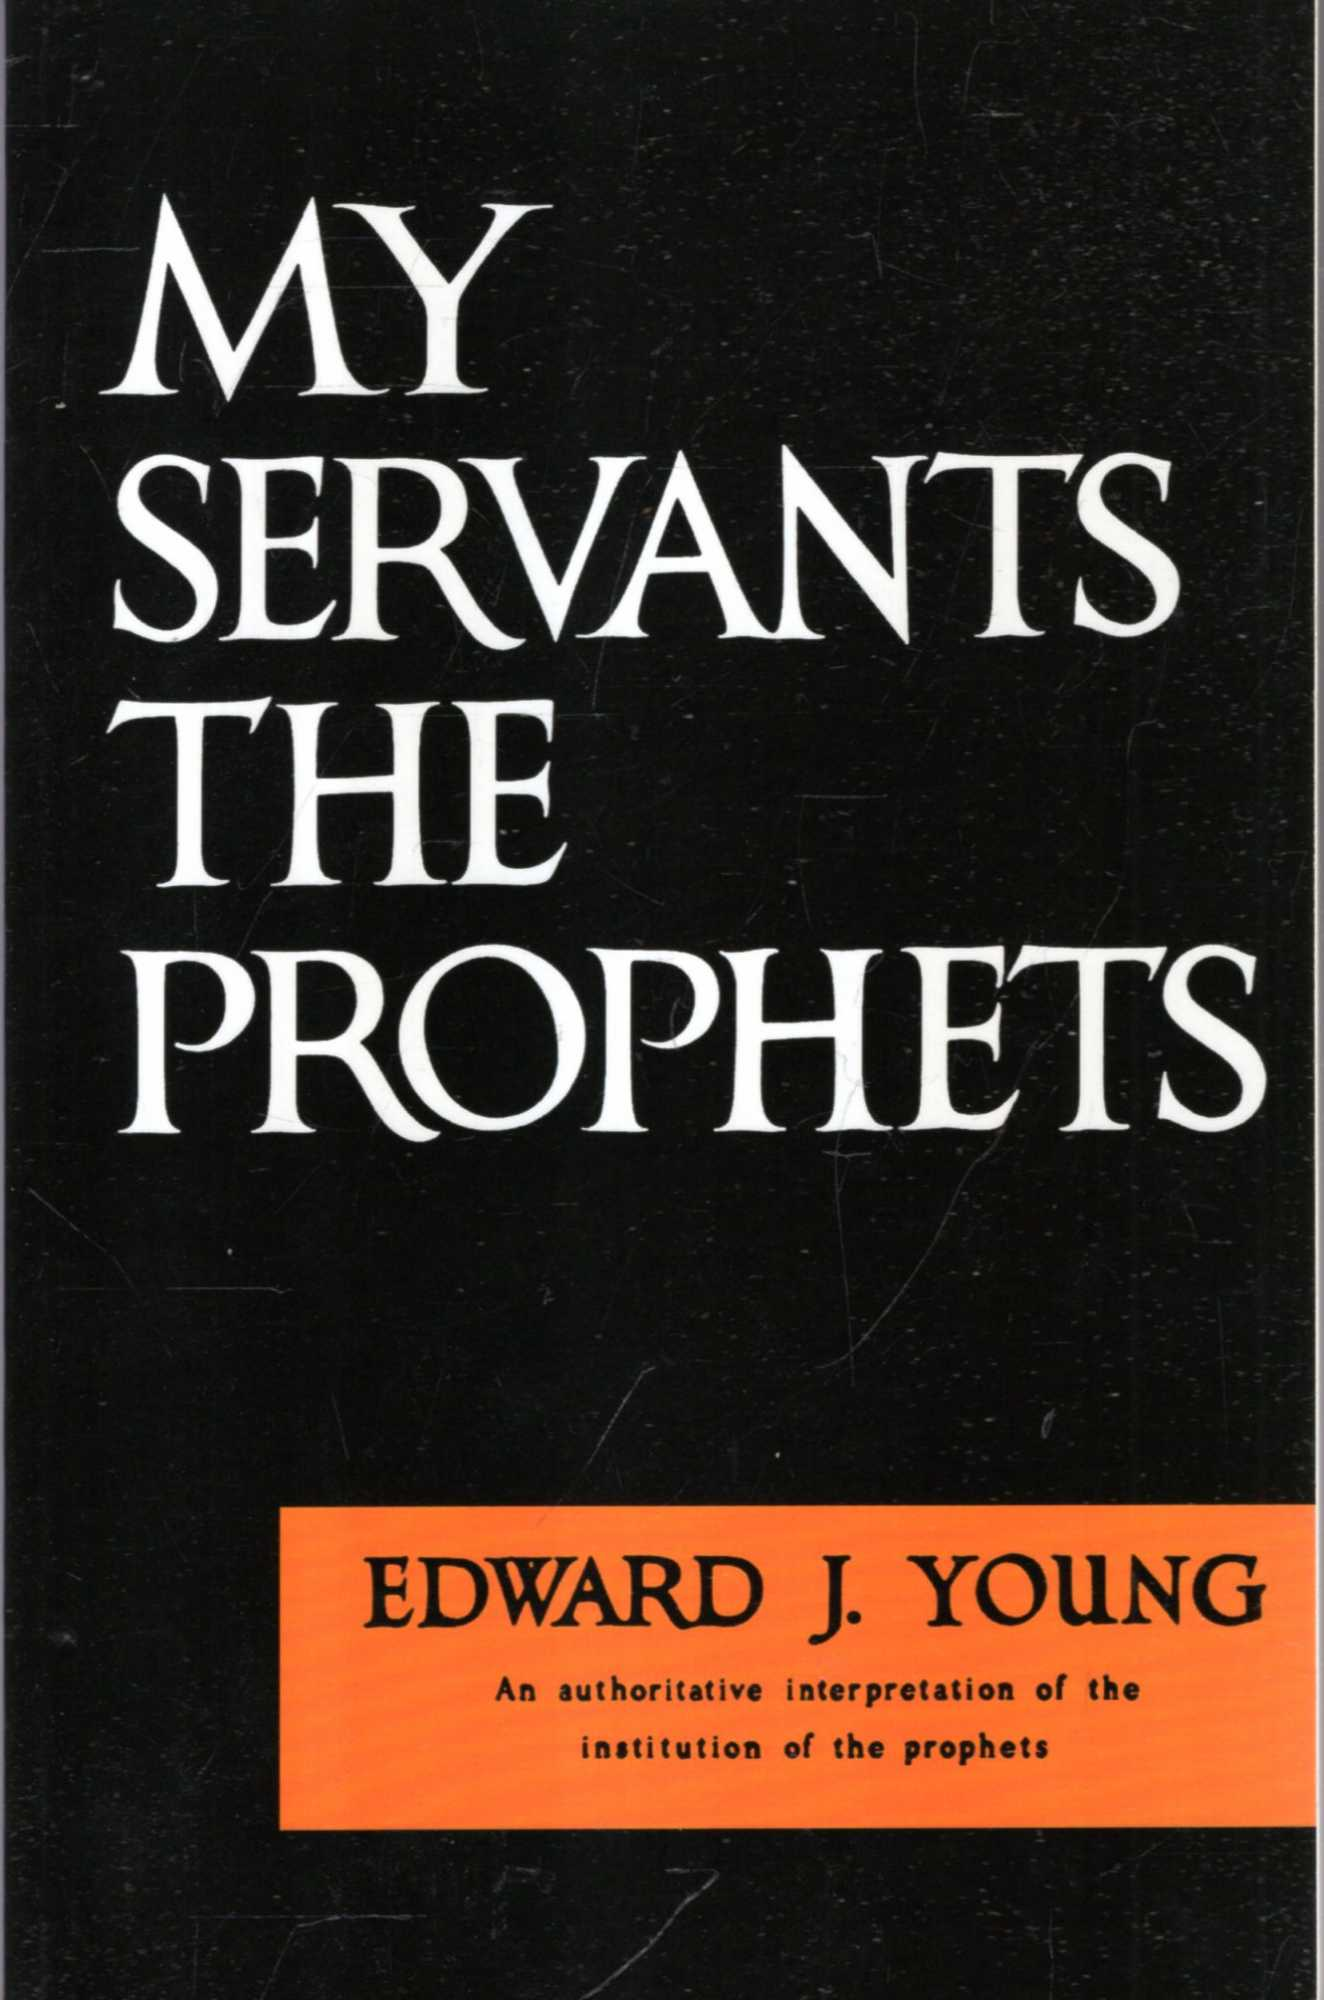 Image for My Servant the Prophets: An Authoritative Interpretation of the Institution of the Prophets